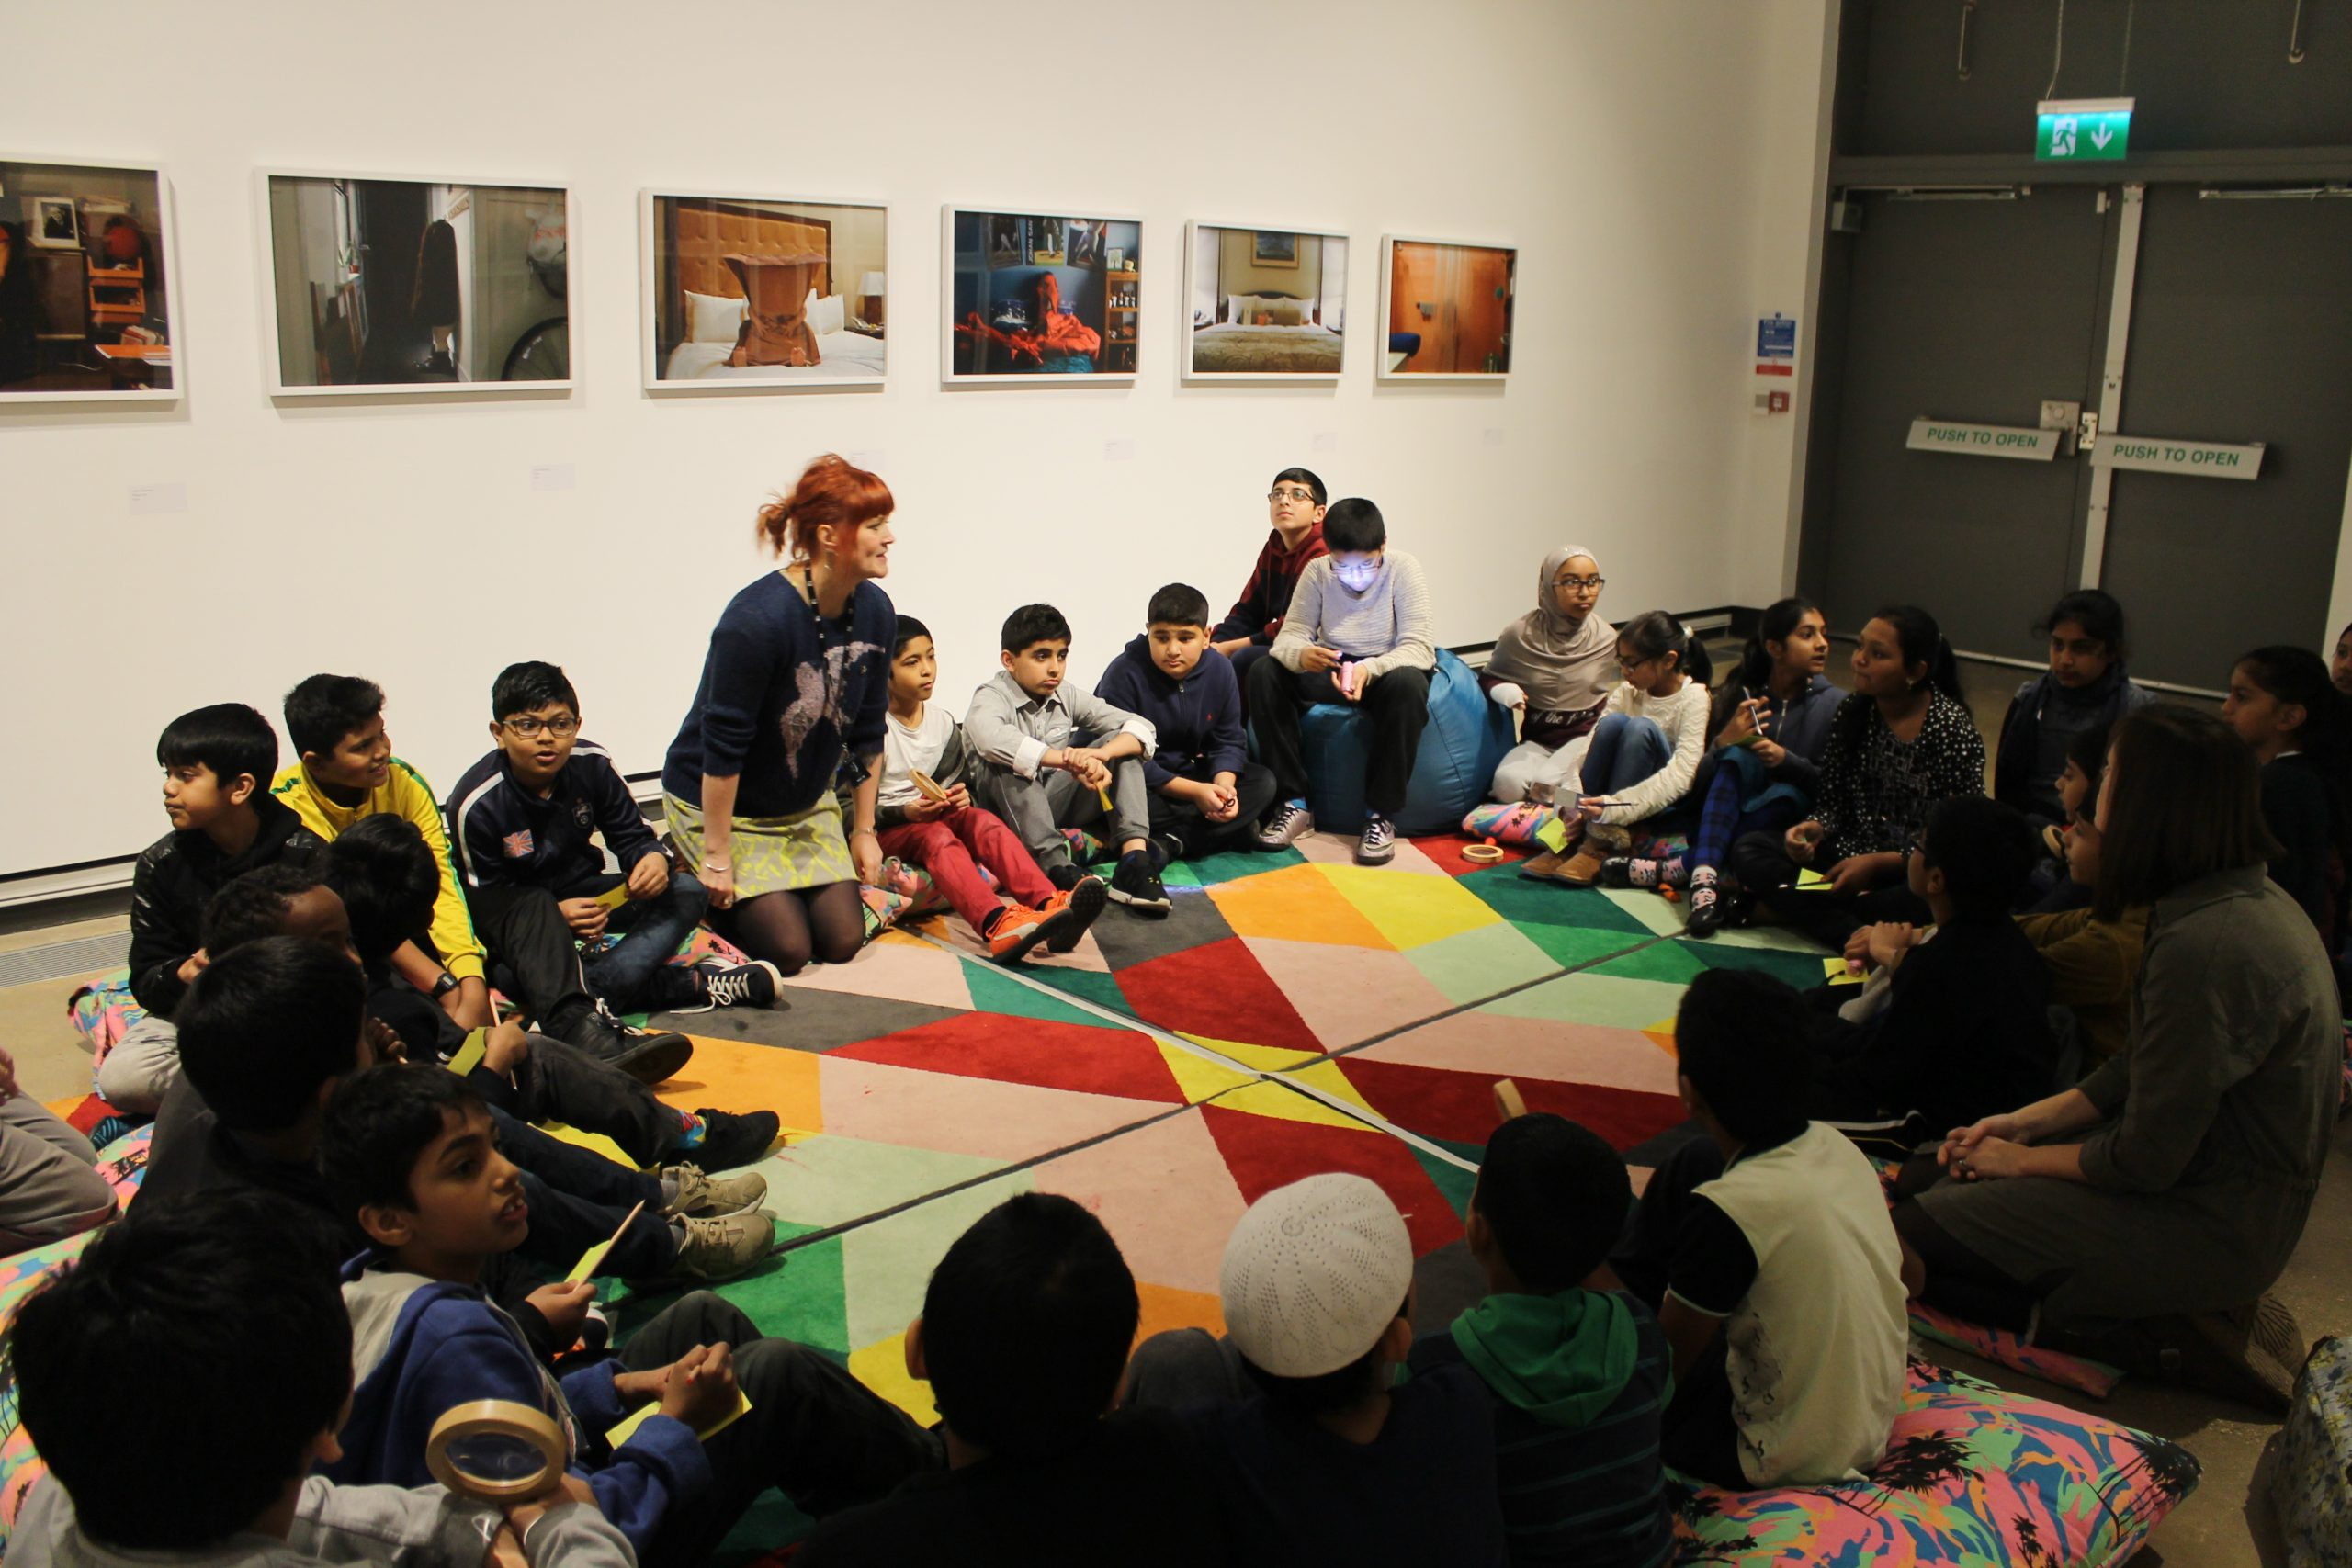 a school group in a circle on the floor